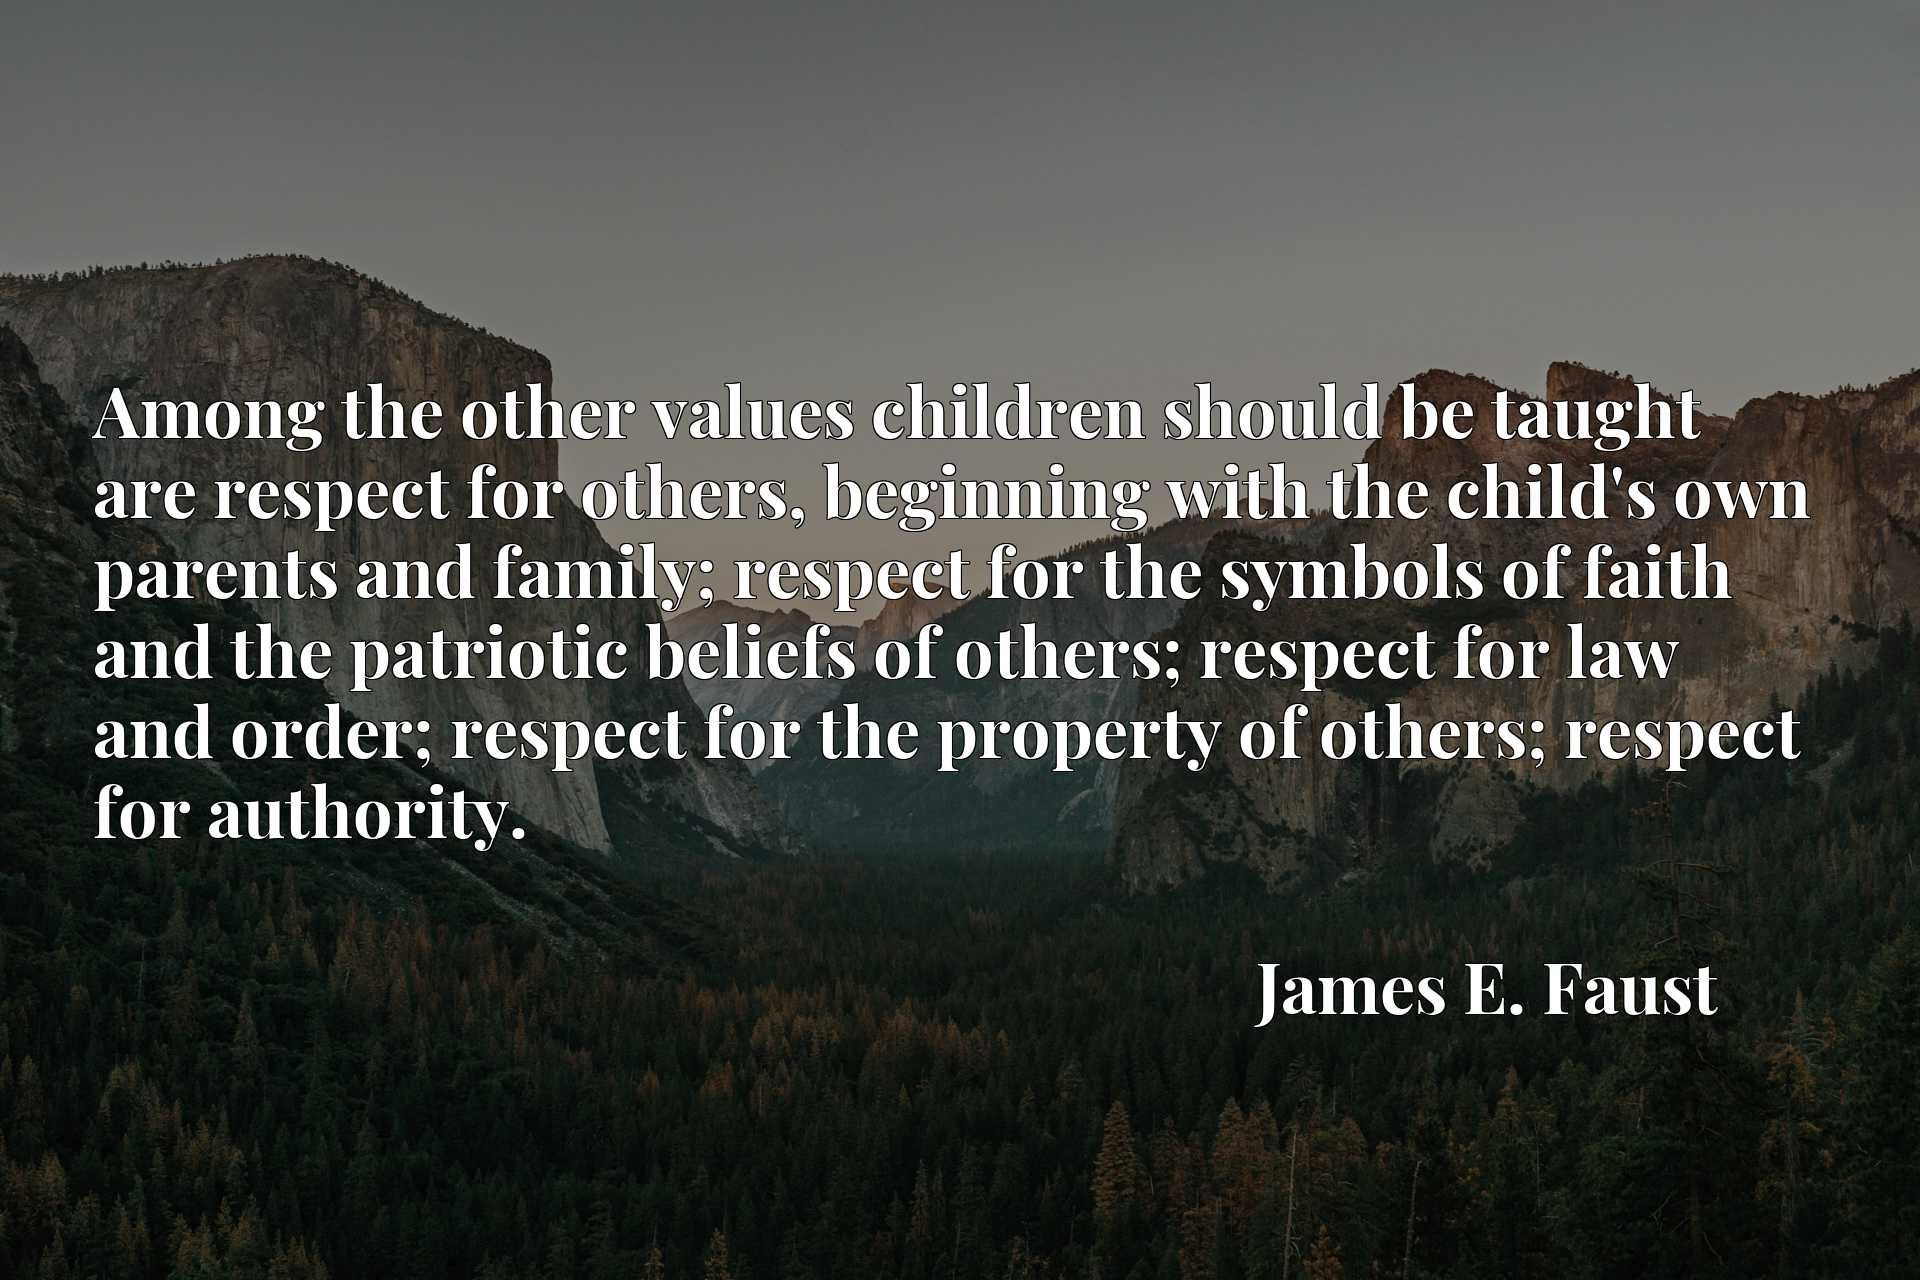 Among the other values children should be taught are respect for others, beginning with the child's own parents and family; respect for the symbols of faith and the patriotic beliefs of others; respect for law and order; respect for the property of others; respect for authority.